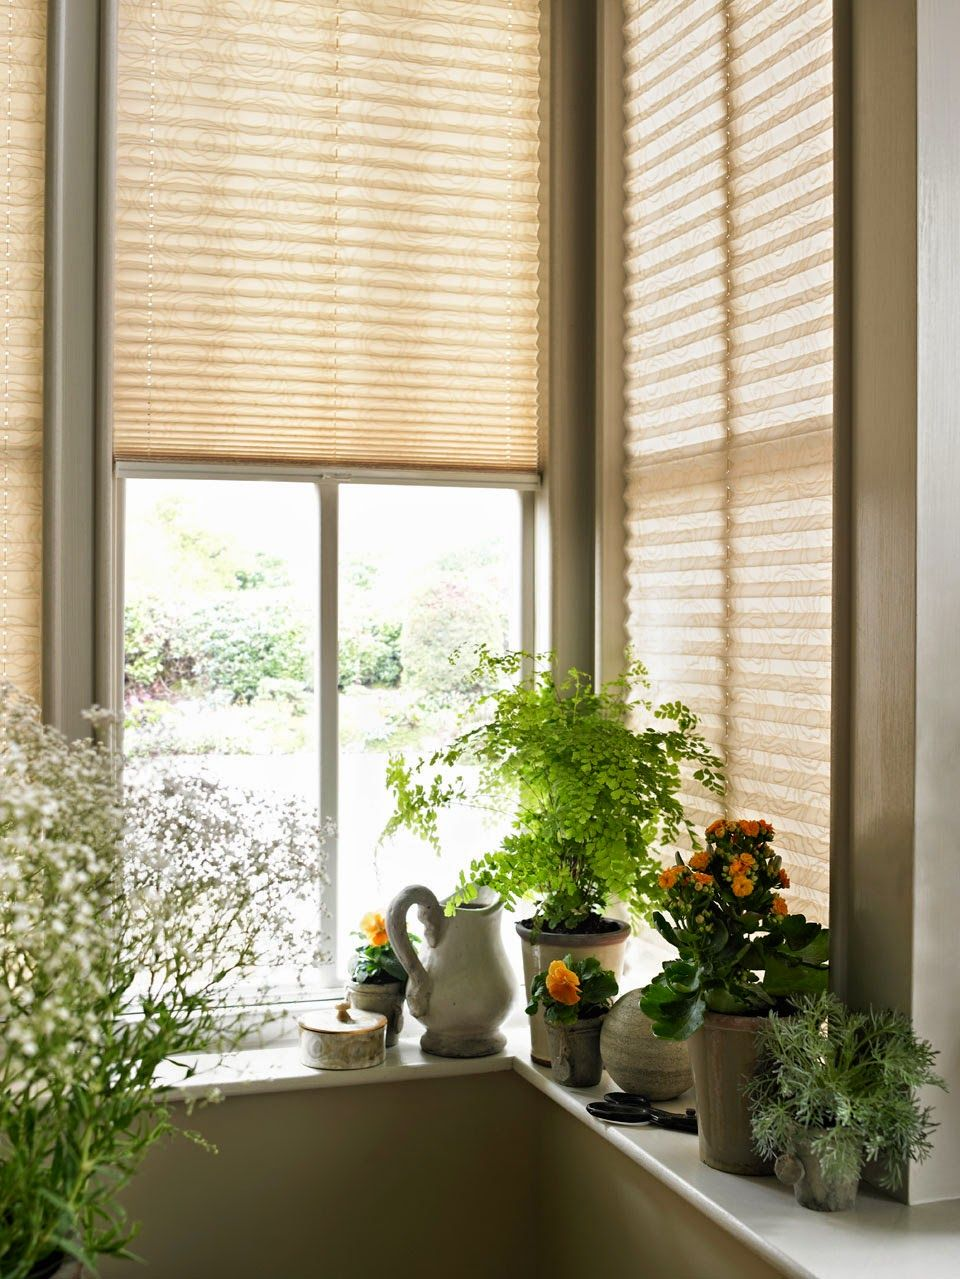 Let the light in windows blinds and shutter inspiration on the